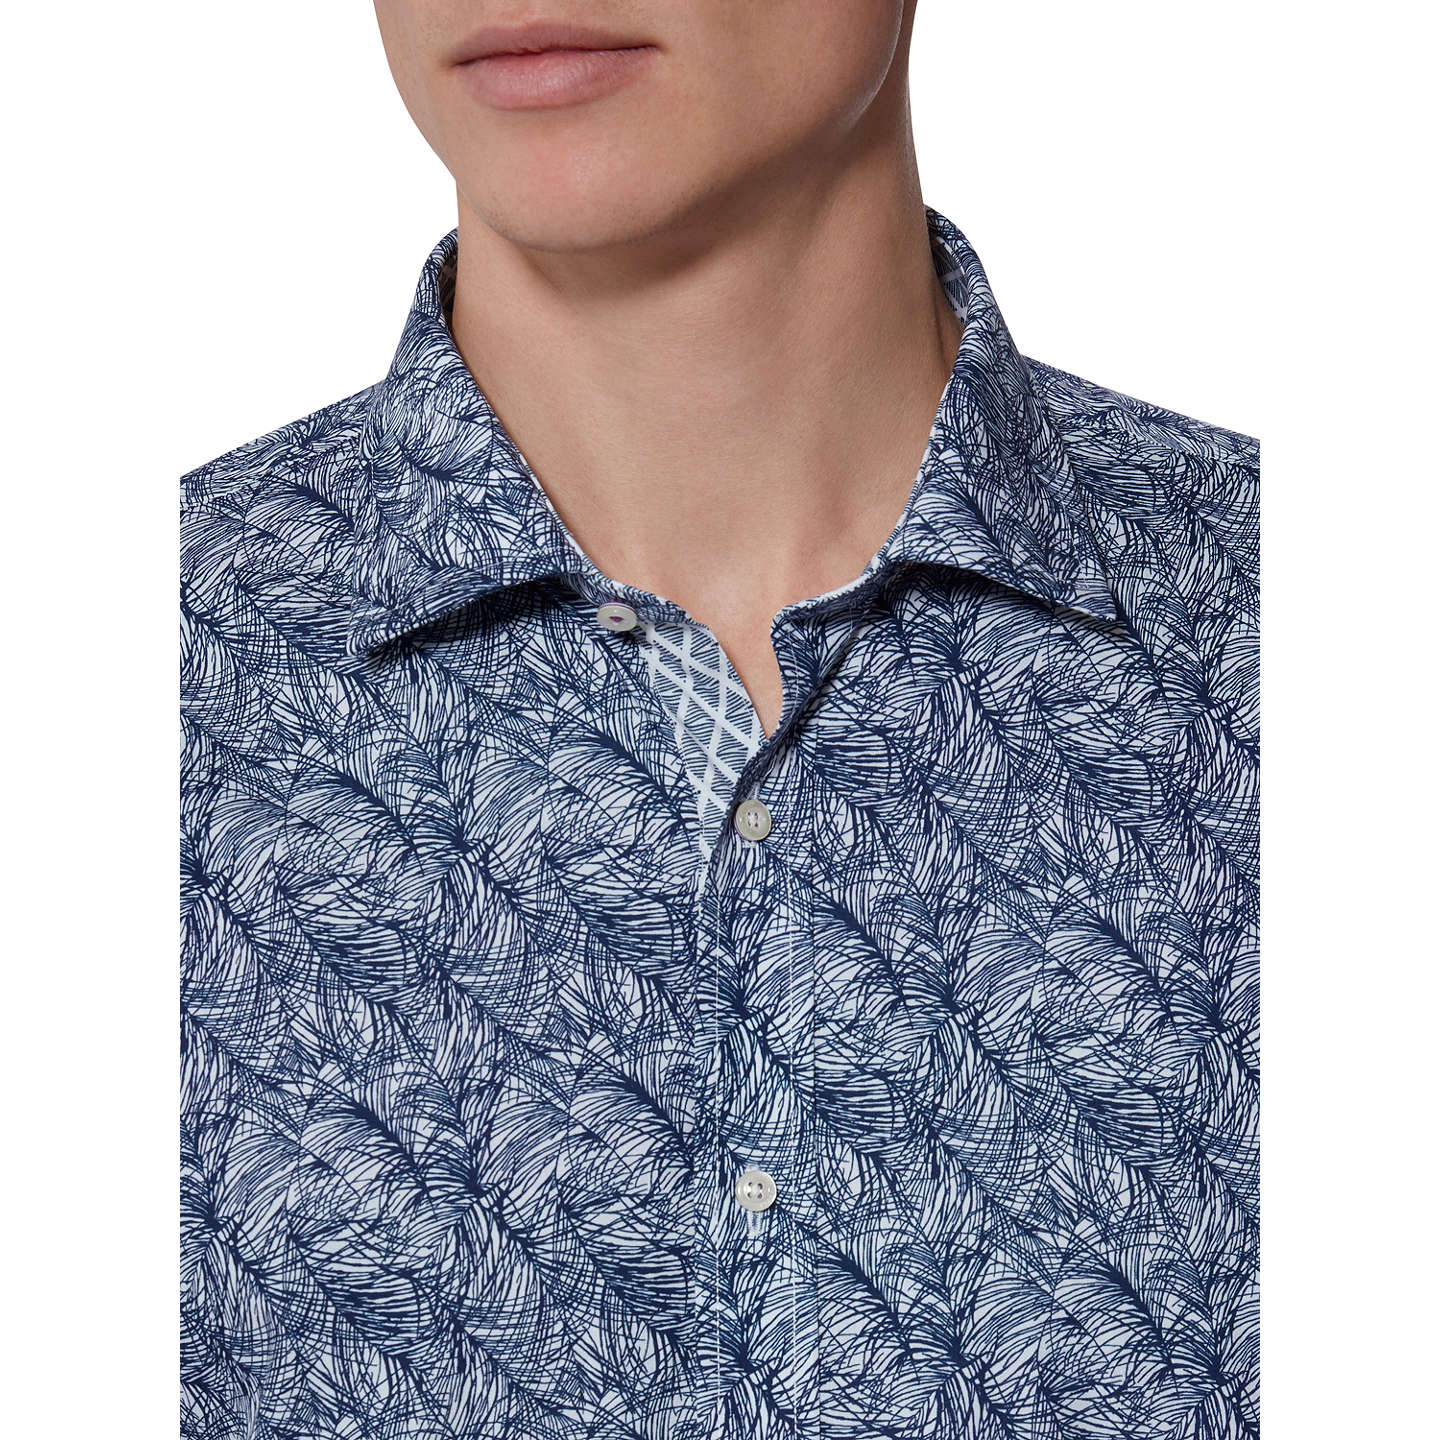 BuyTed Baker Messera Print Tailored Fit Shirt, Navy, 15 Online at johnlewis.com